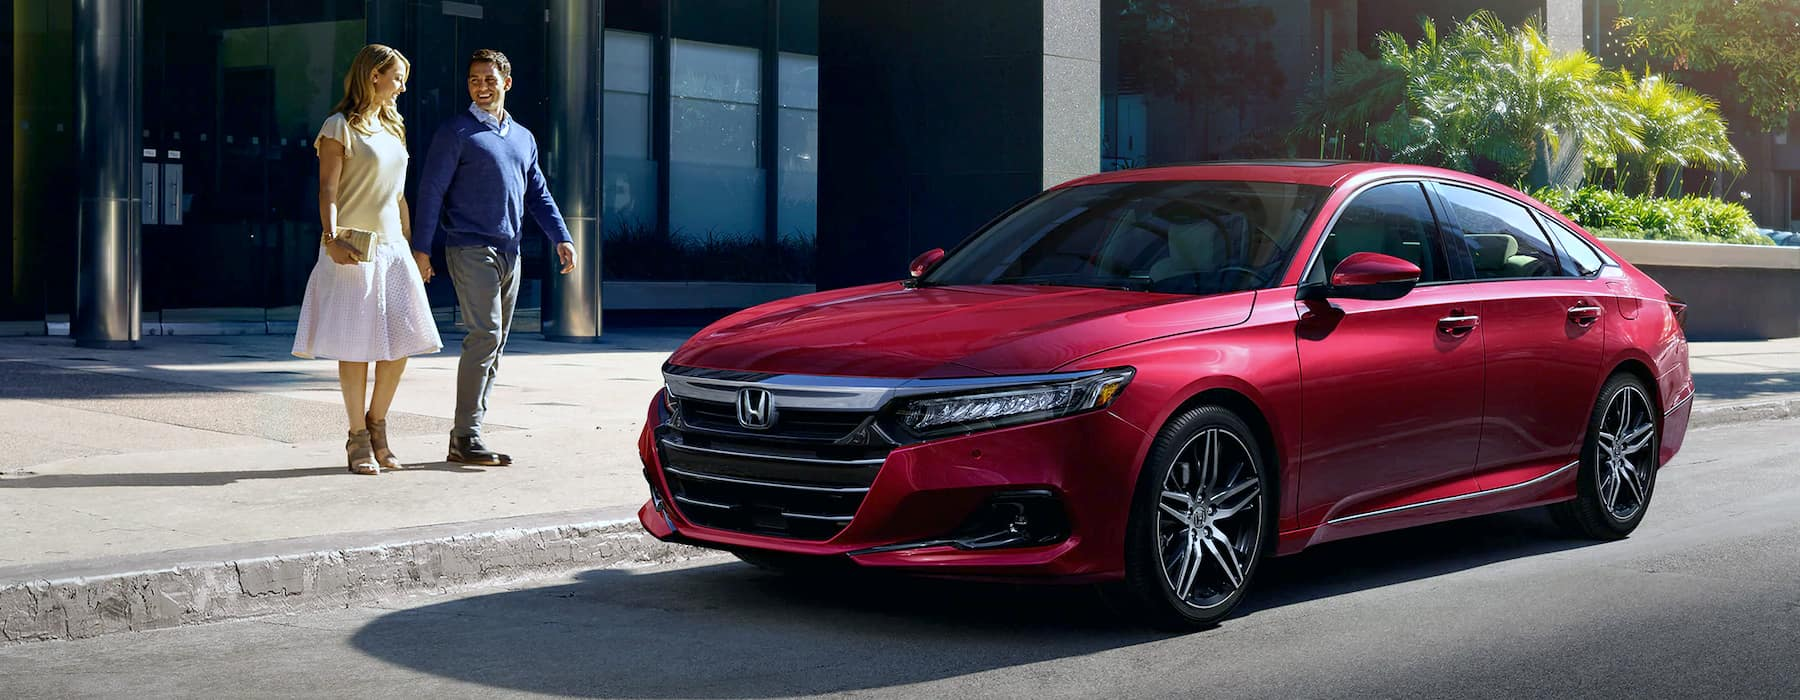 2021 Honda Accord Overview Slider